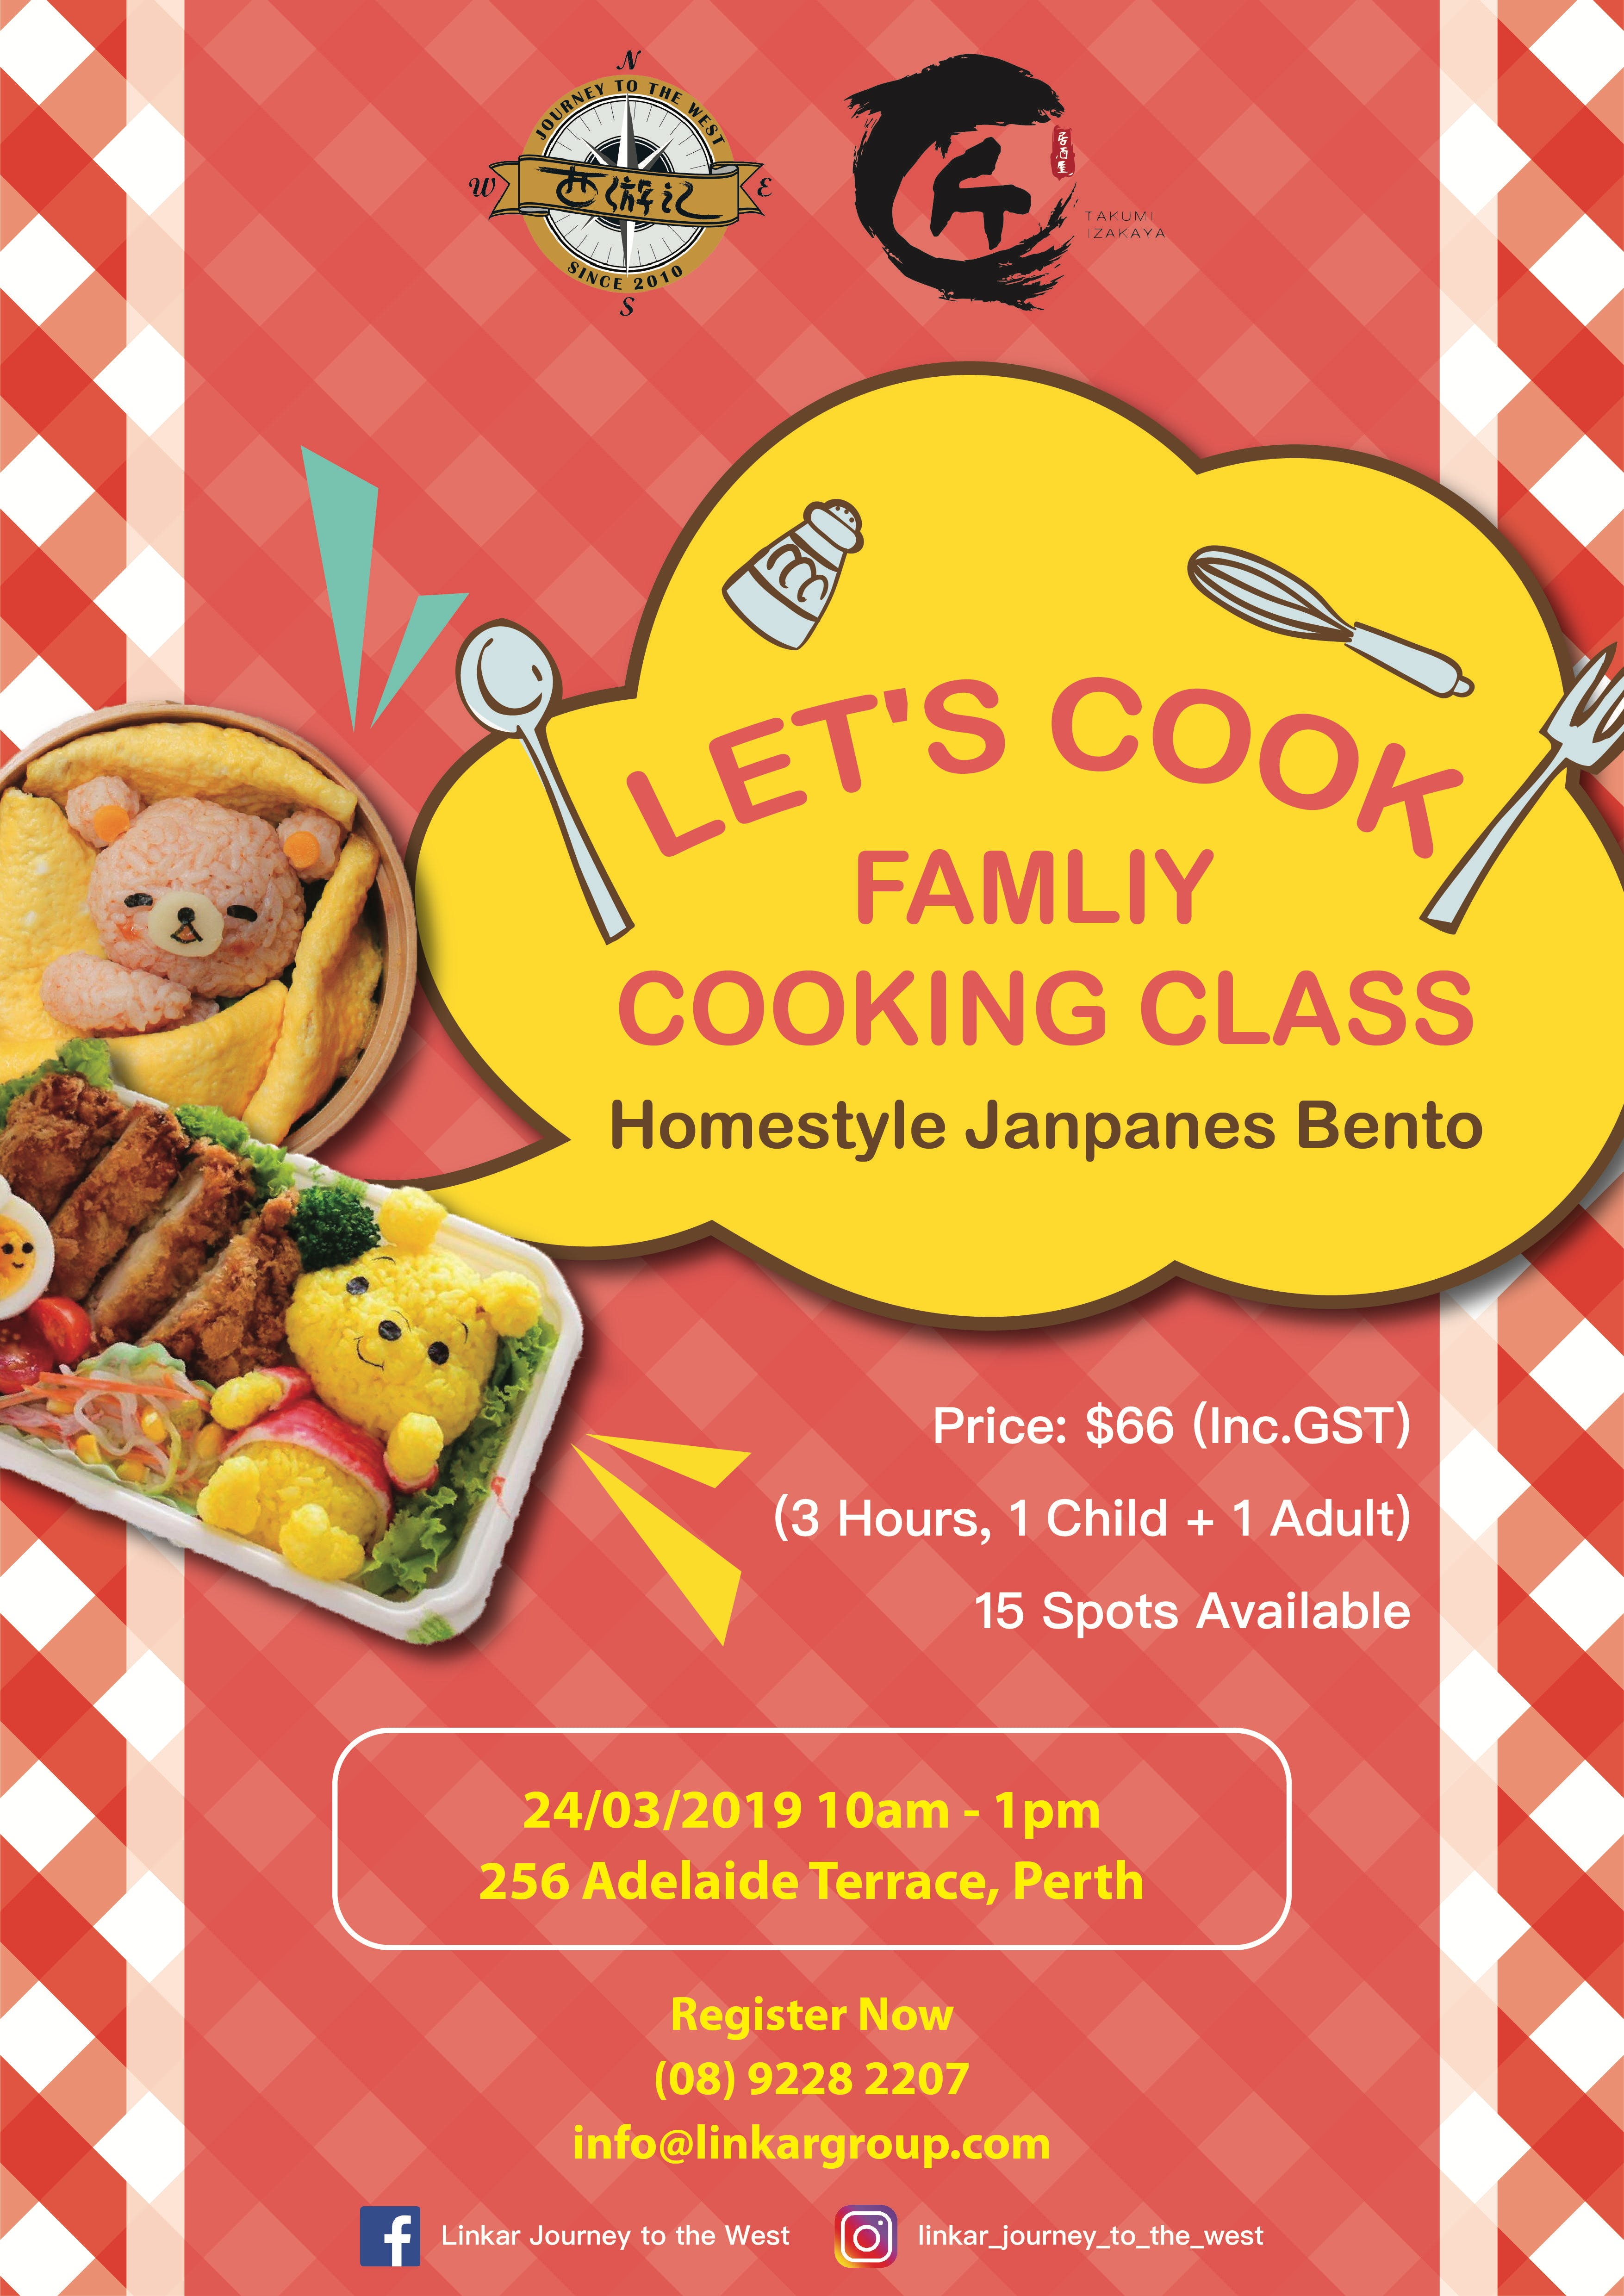 Let's Cook - Family Cooking Class